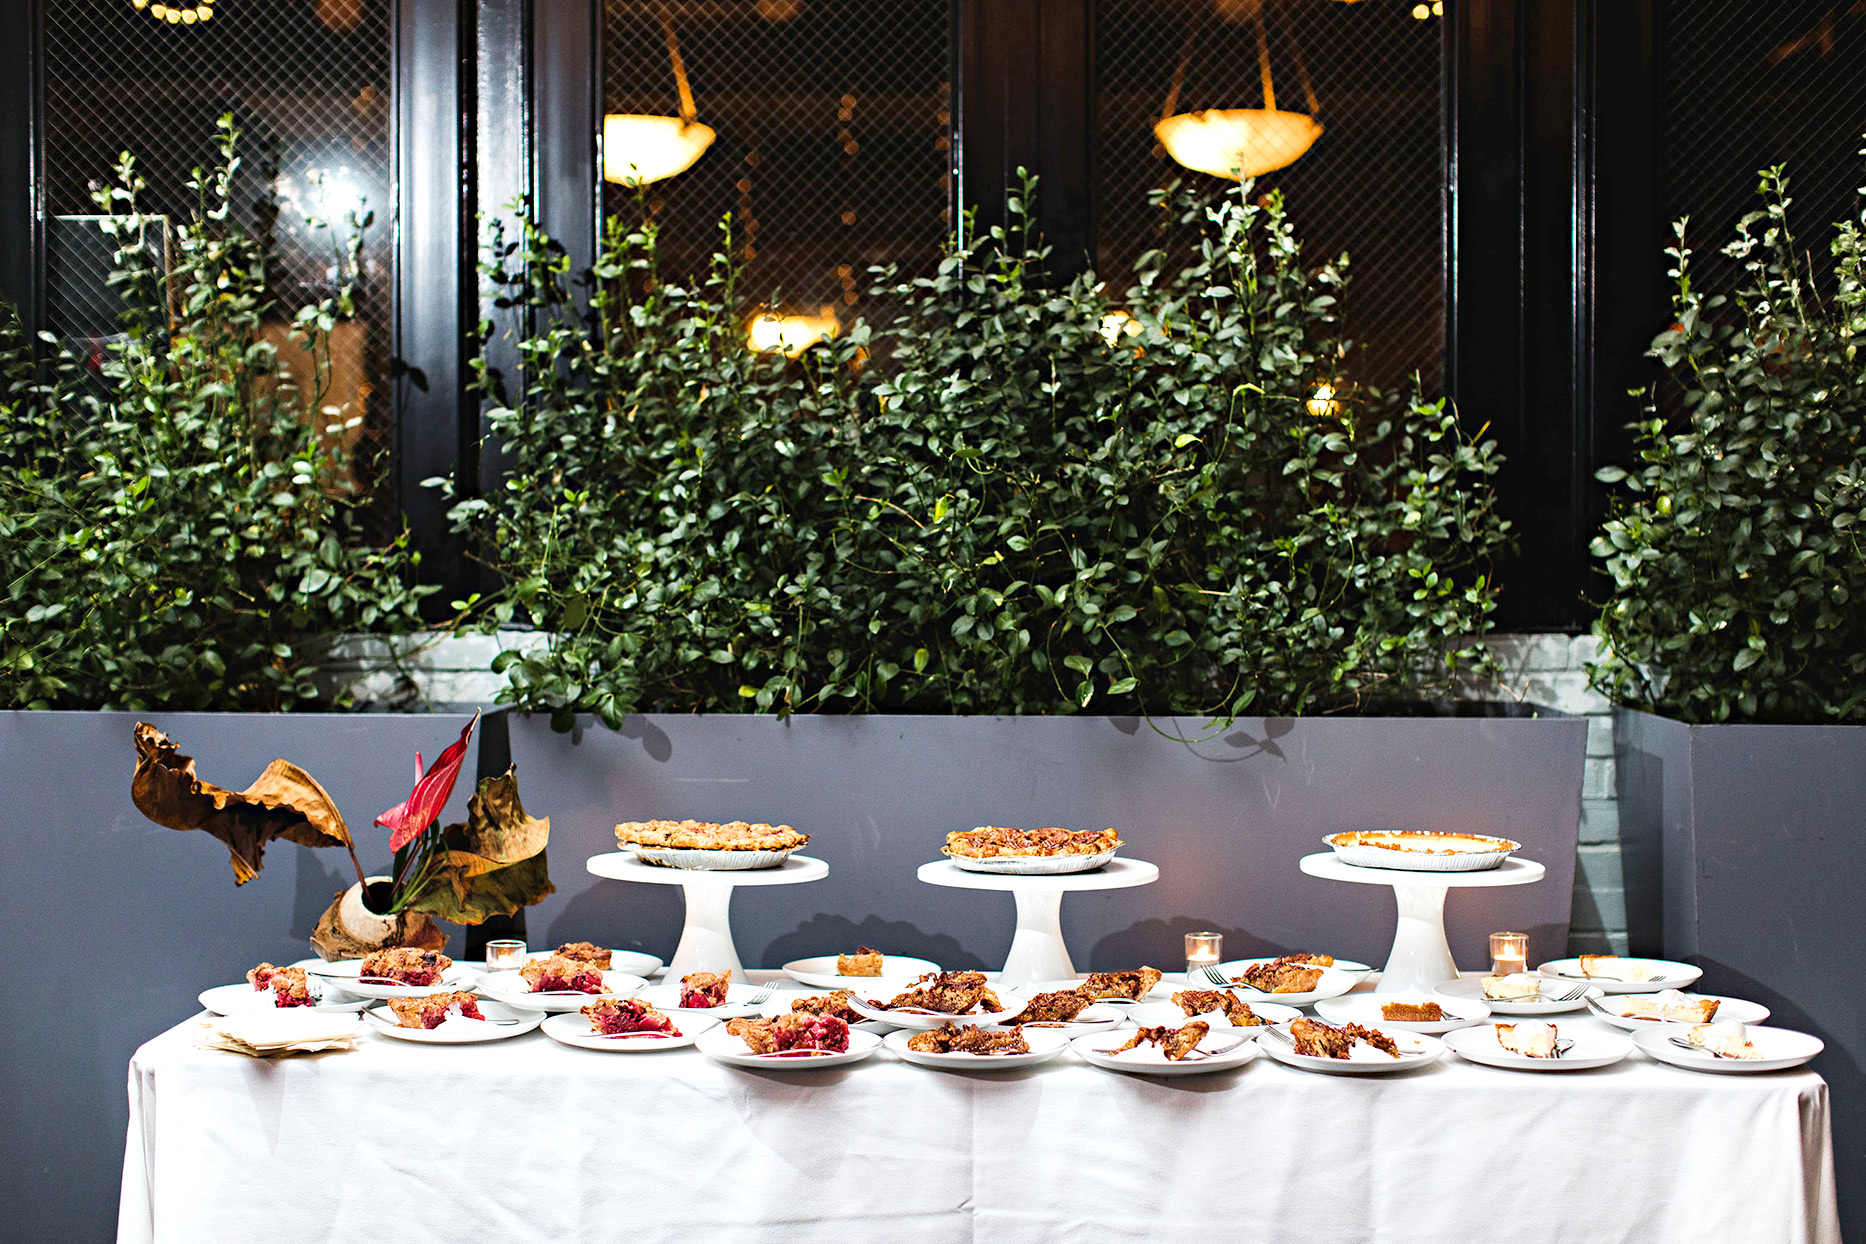 dessert table with variety of pies